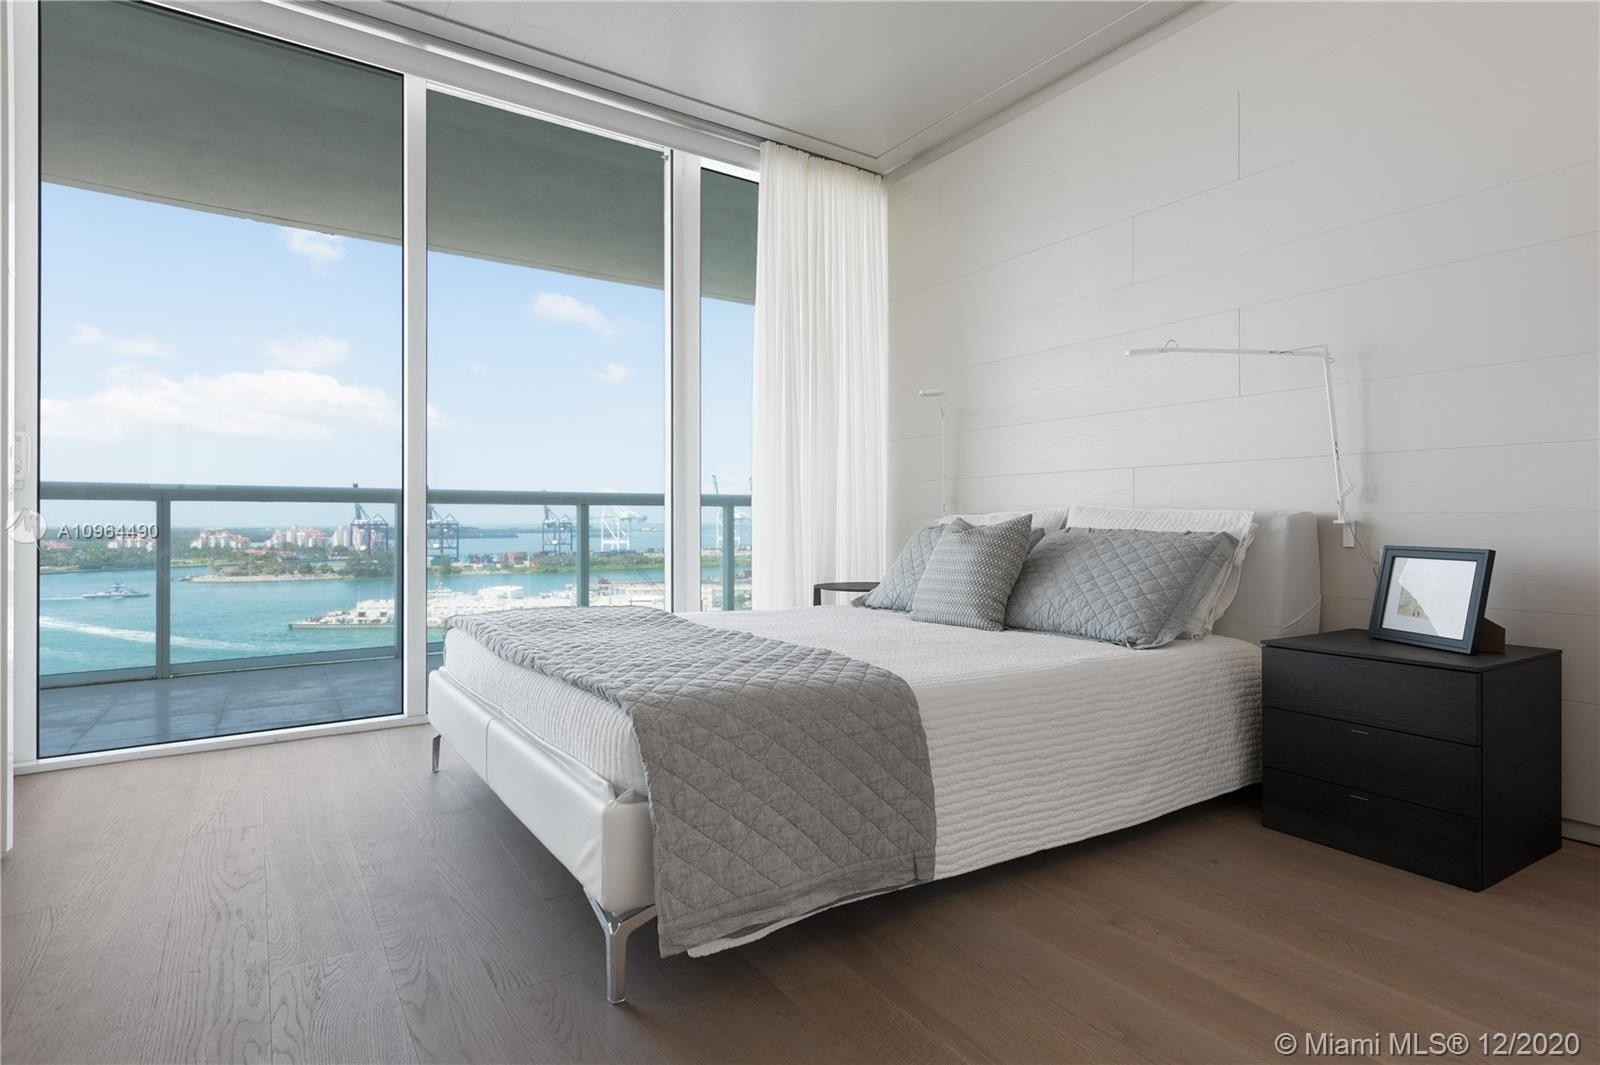 Property à 450 Alton Rd , 1701 SoFi, Miami Beach, FL 33139